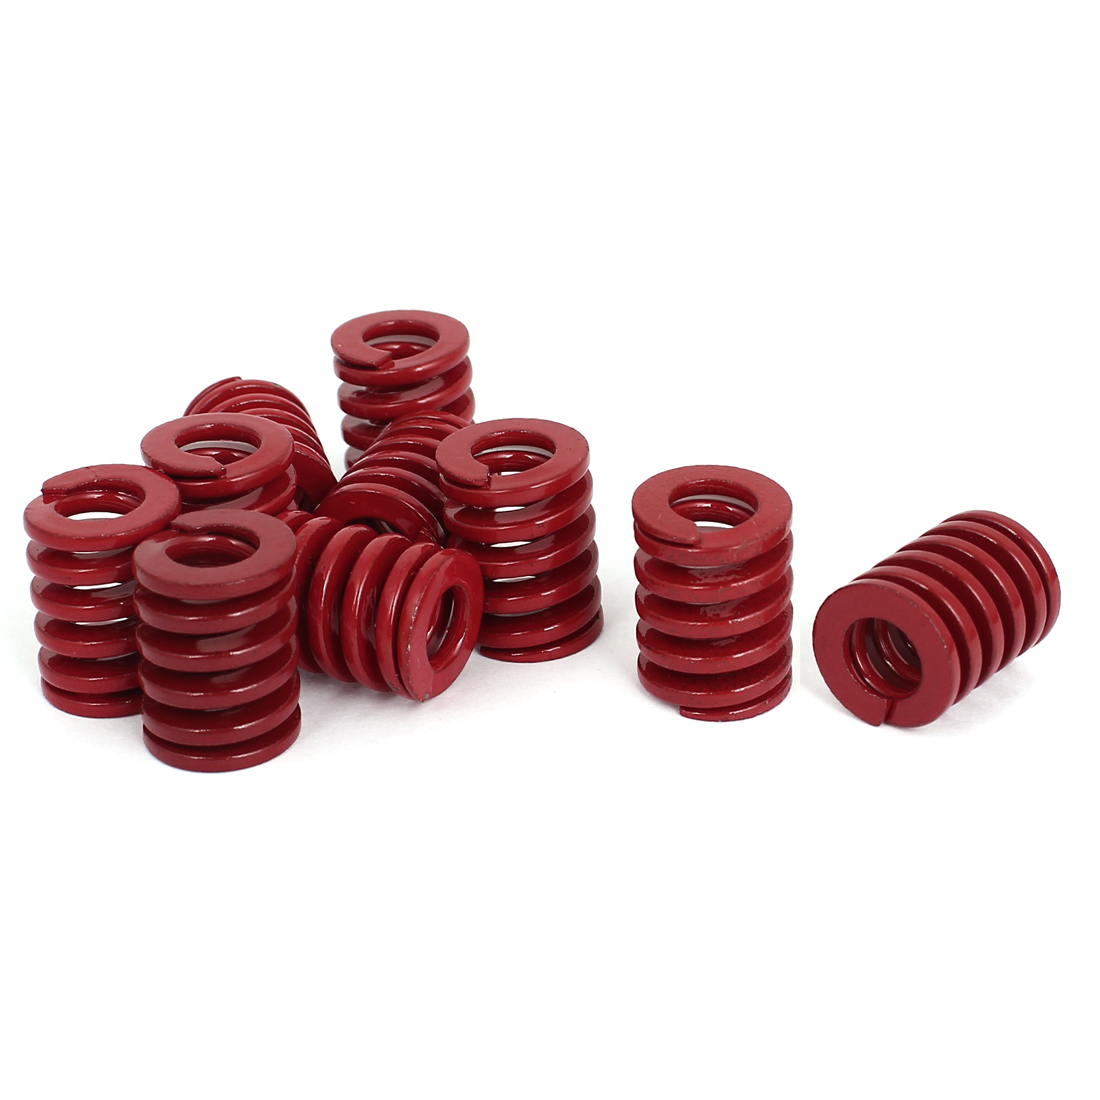 16mm OD 20mm Long Medium Load Stamping Compression Mold Die Spring Red 10pcs